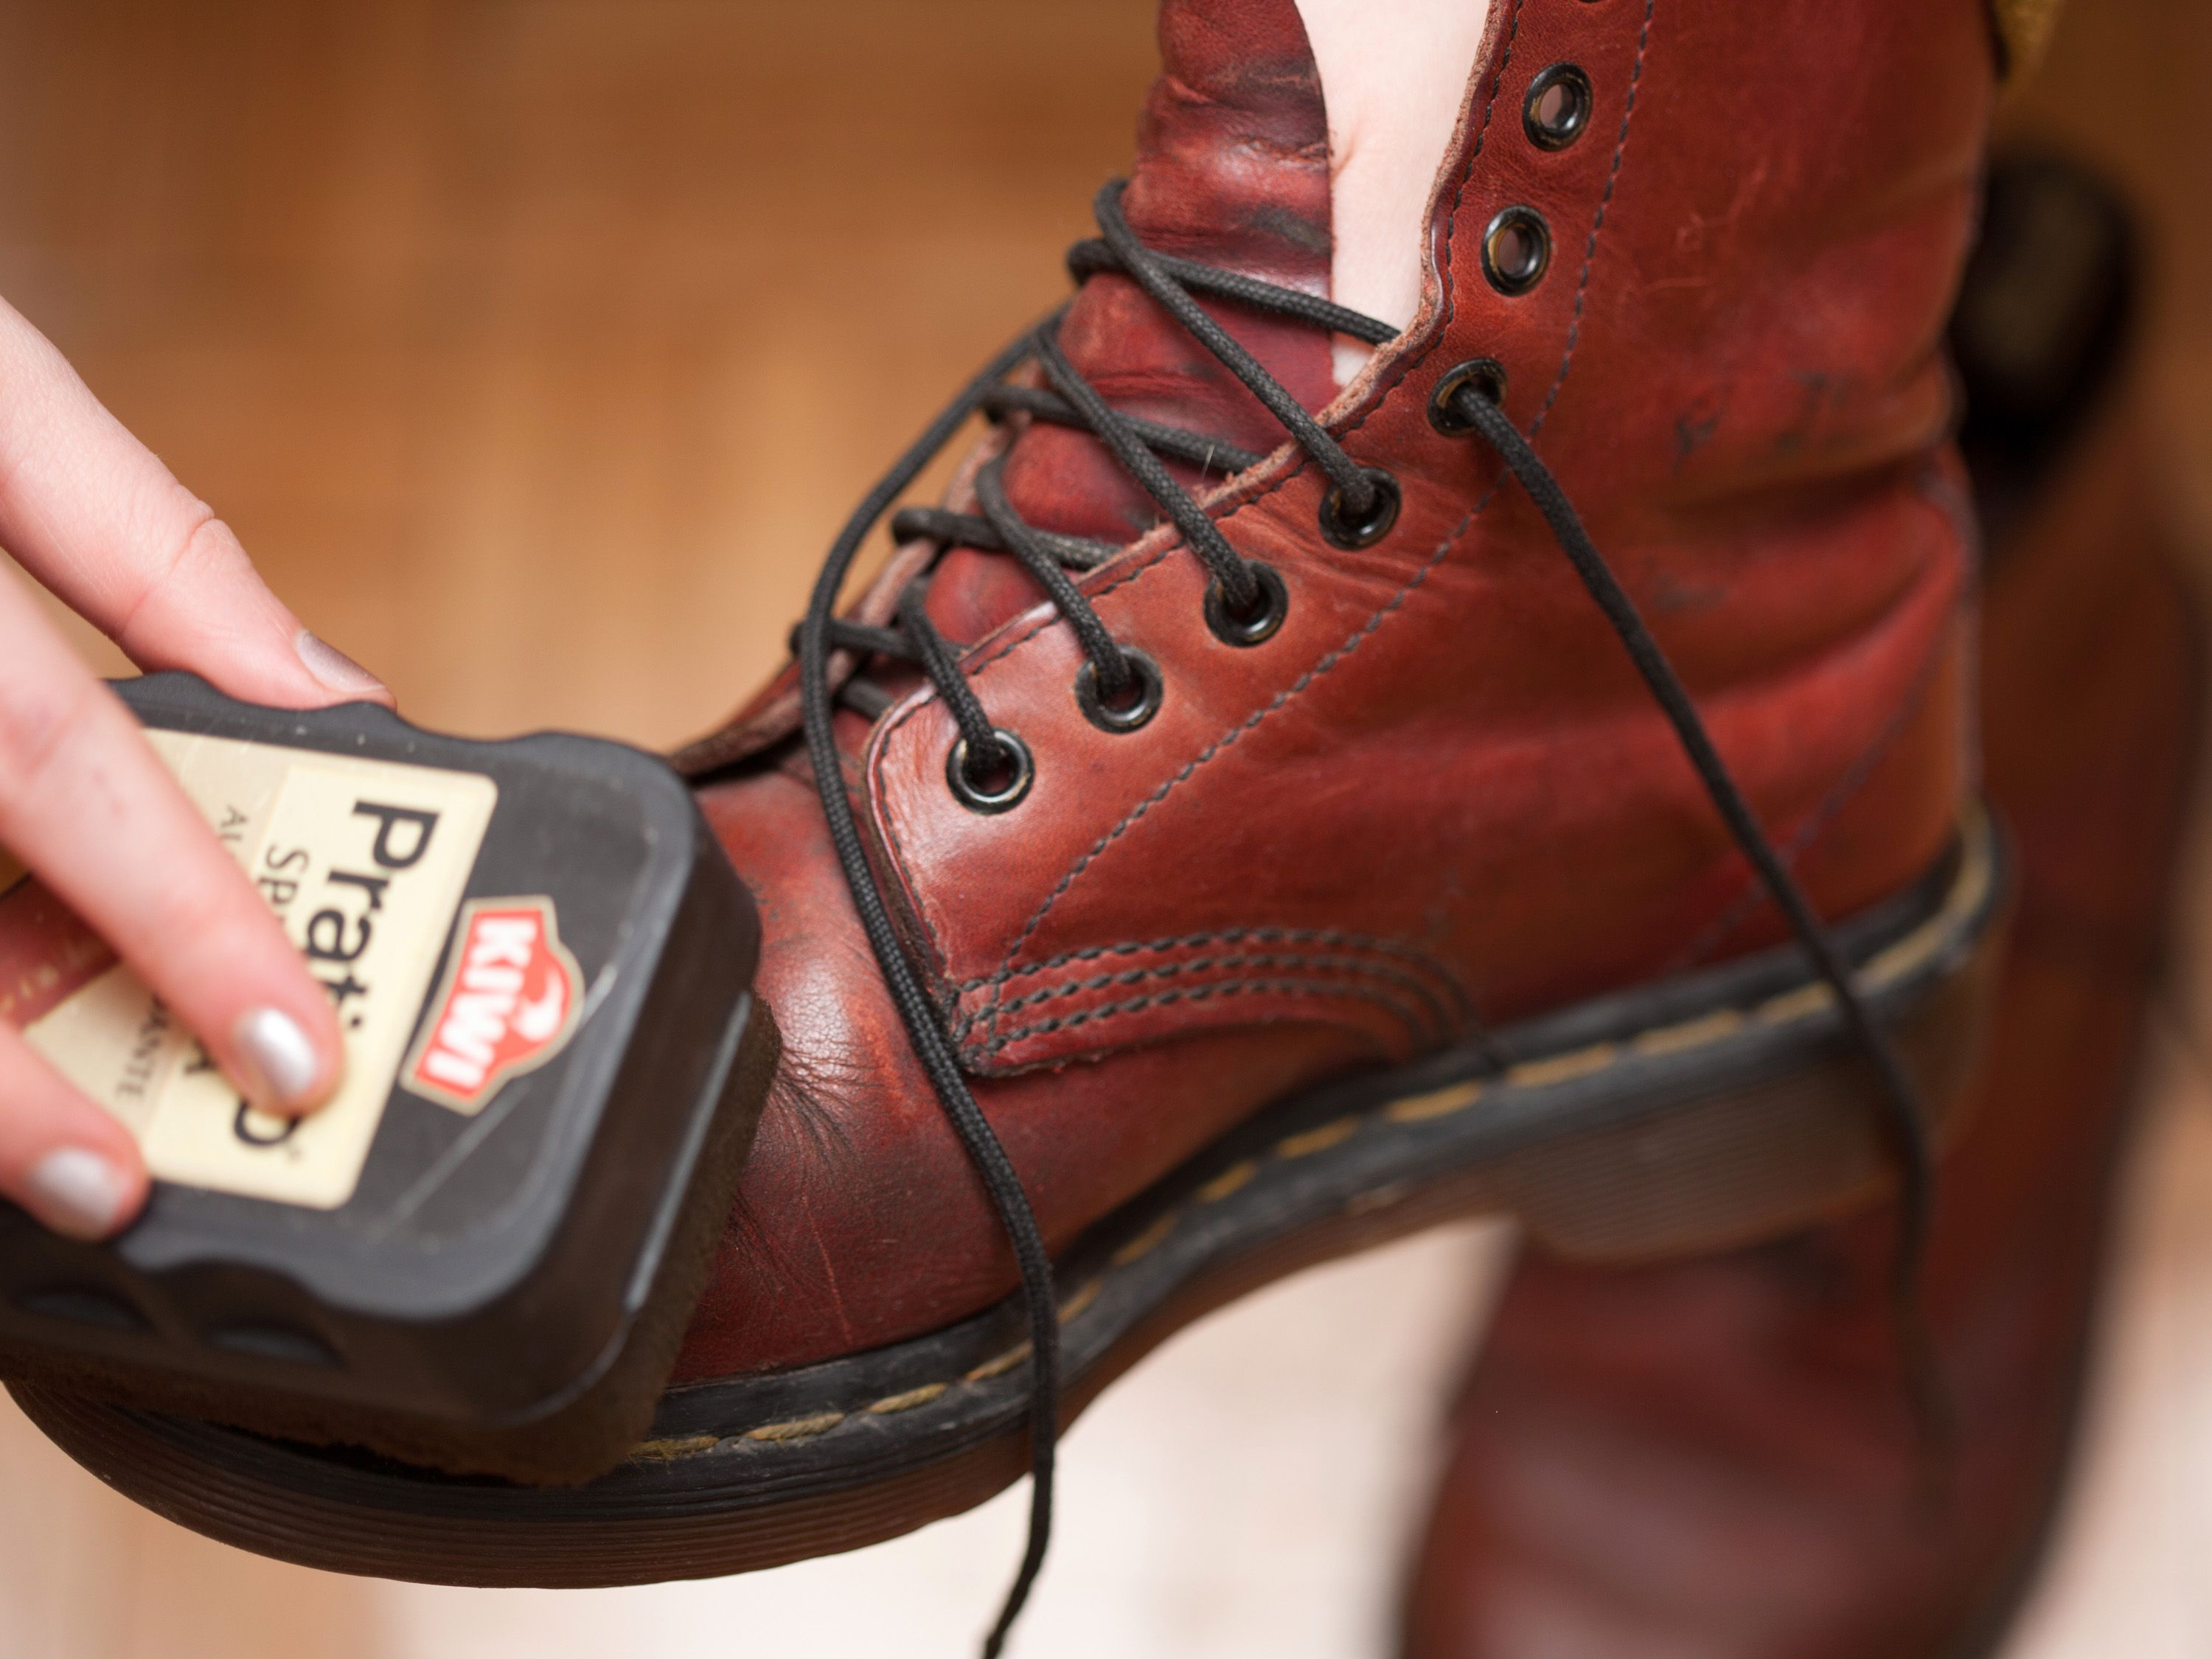 How To Clean Road Salt Off Leather Shoes Via Wikihow